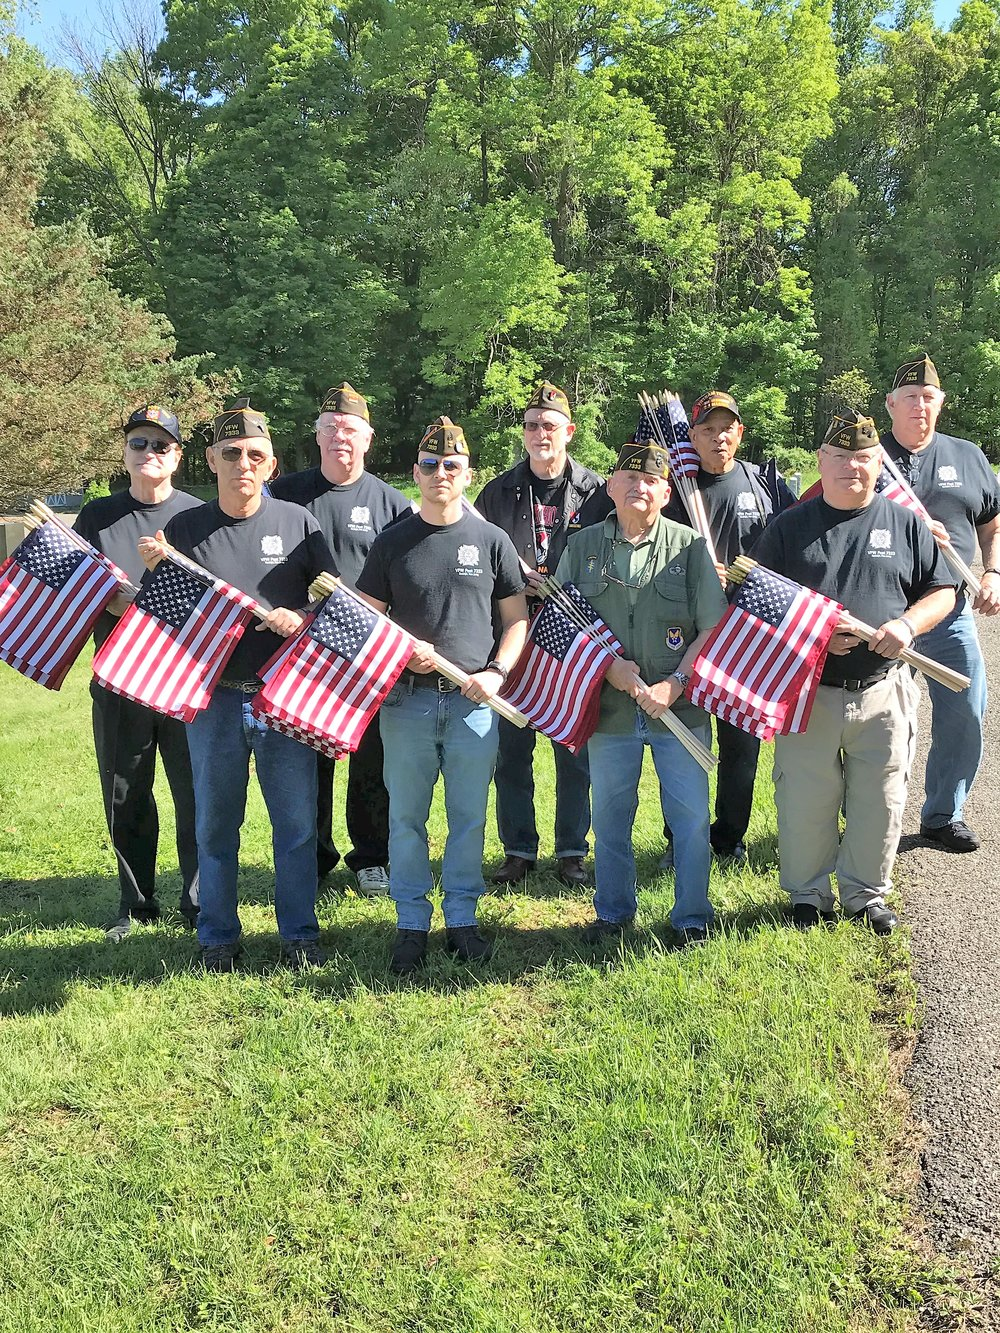 For Memorial Day our Post places flags on the graves of veterans in seven cemeteries in Randolph. Shown here (L to R) are Bill, Ken, John, Scott, Len, the Colonel, Emerson, Ted, Dan. Quartermaster Jack took the photo. We were honored to express our respects and gratitude for their service.